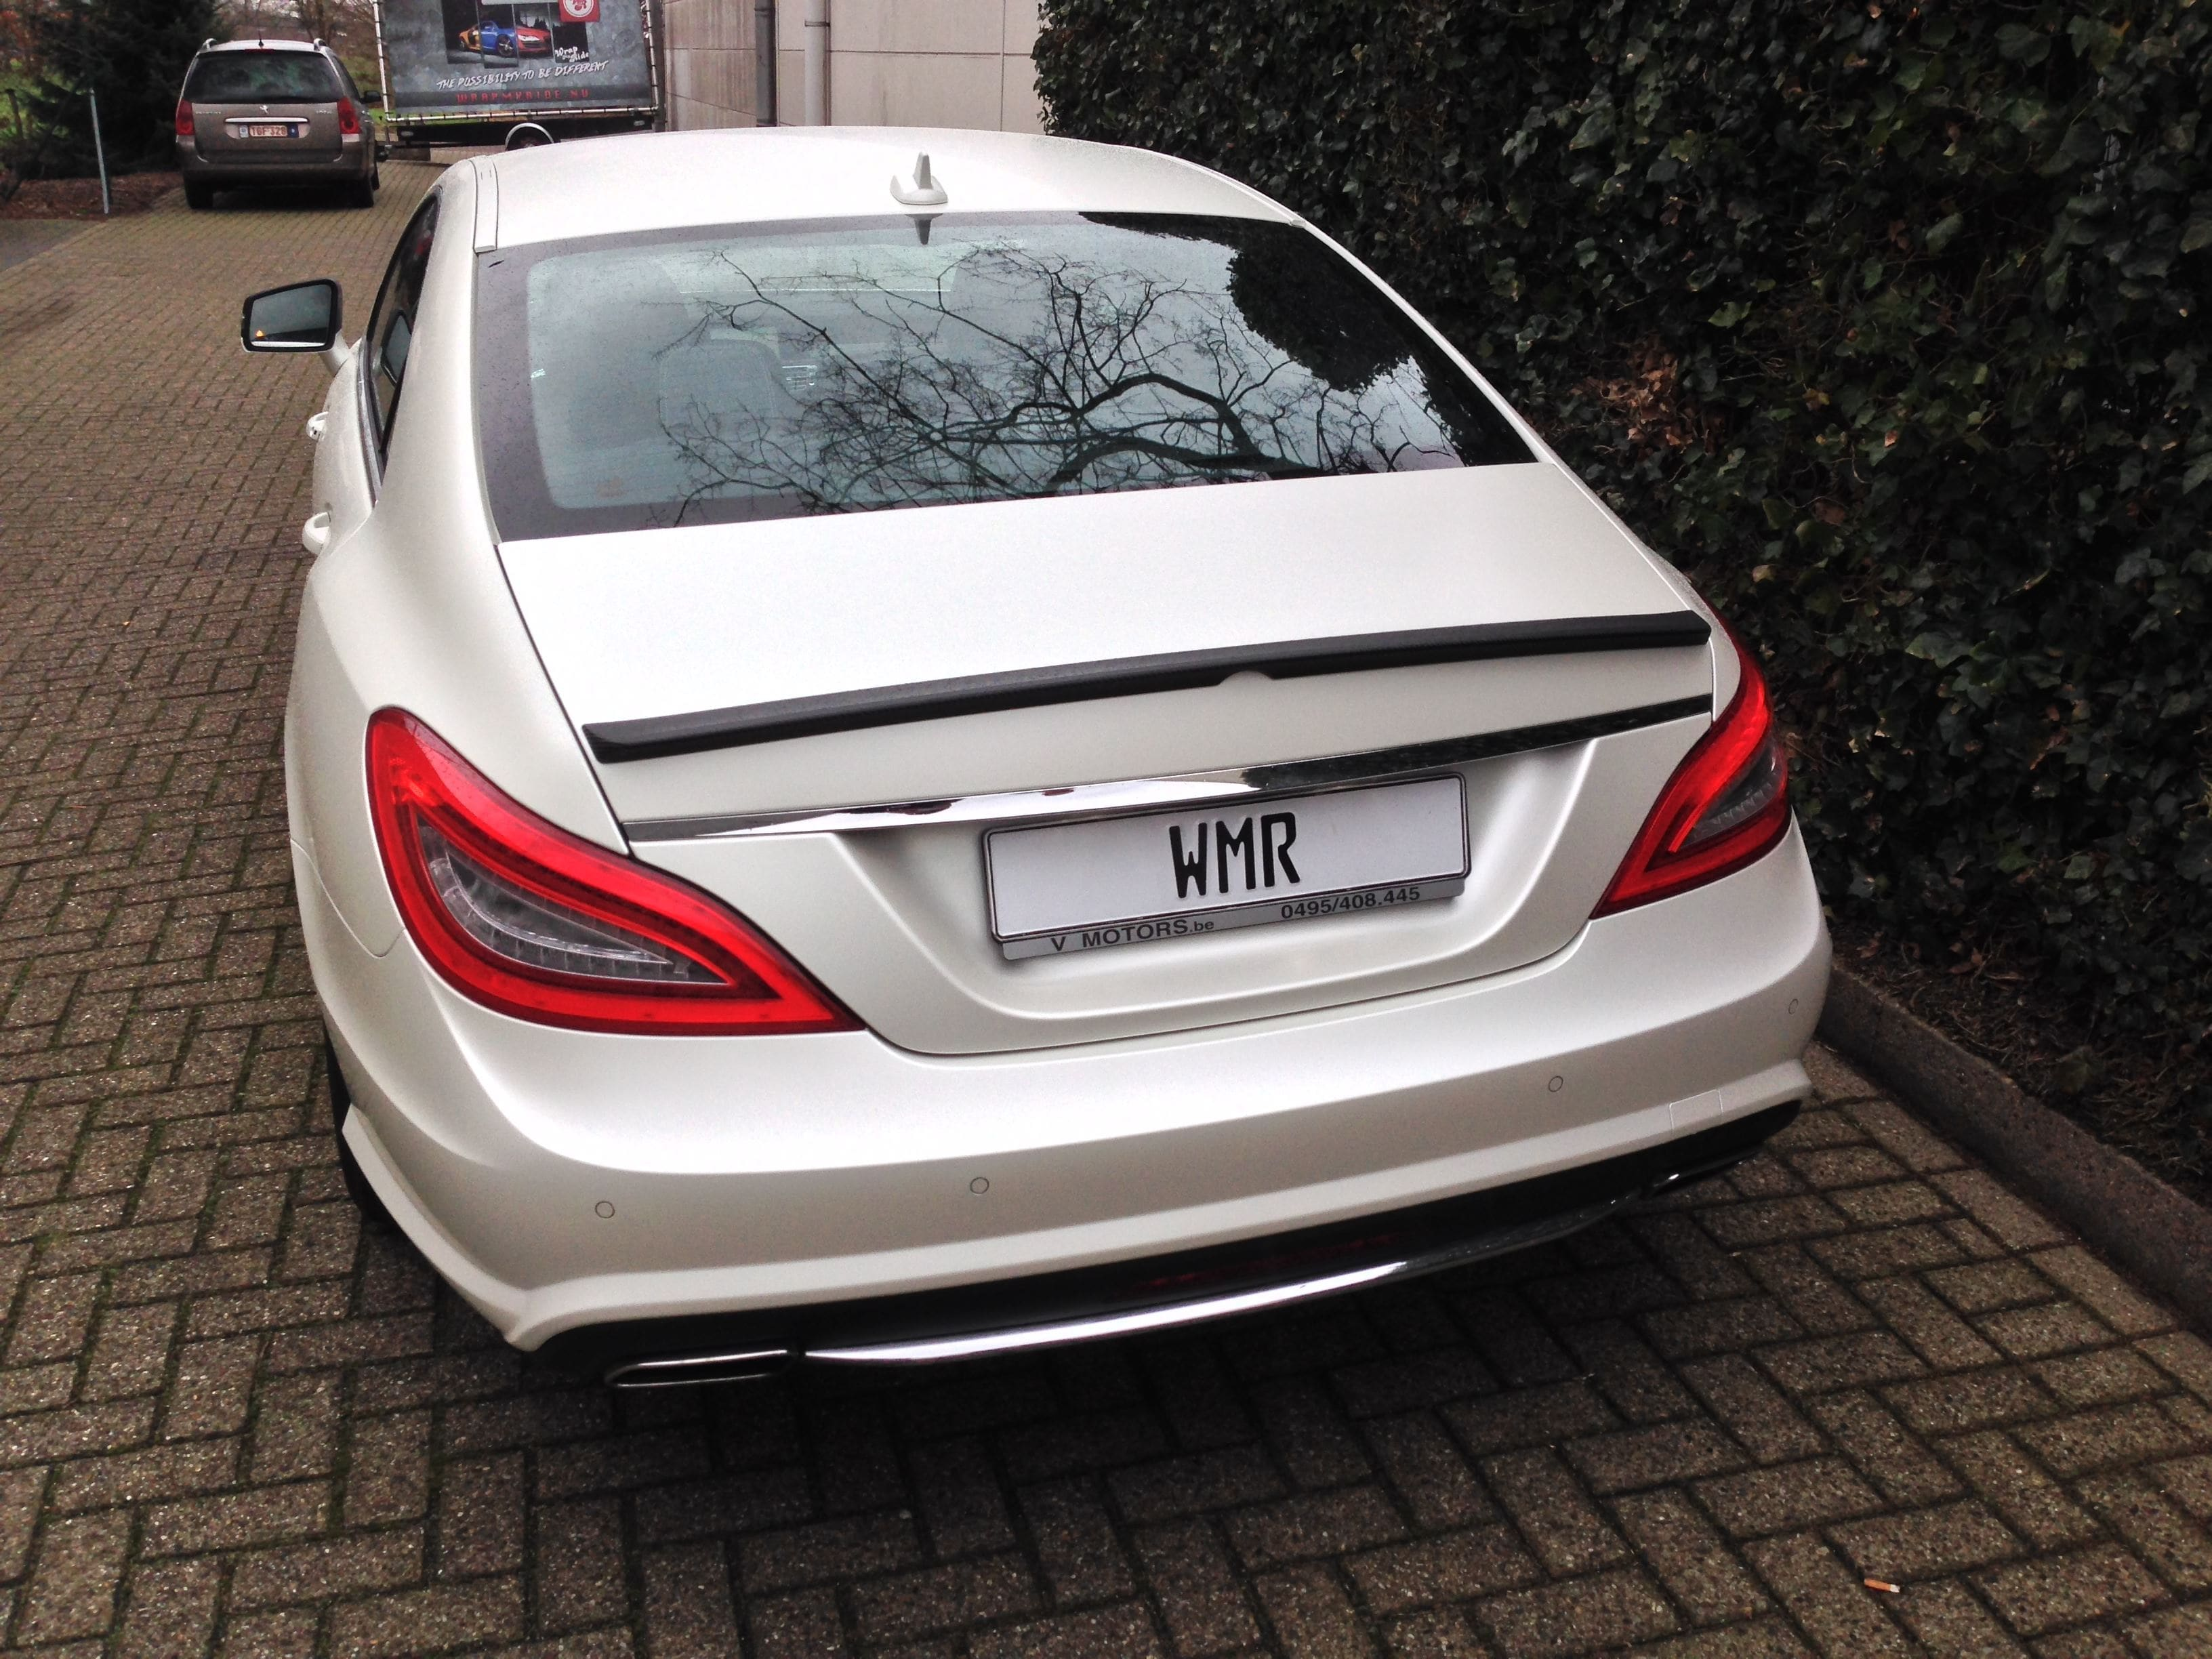 Mercedes CLS met White Satin Pearl Wrap, Carwrapping door Wrapmyride.nu Foto-nr:6211, ©2020